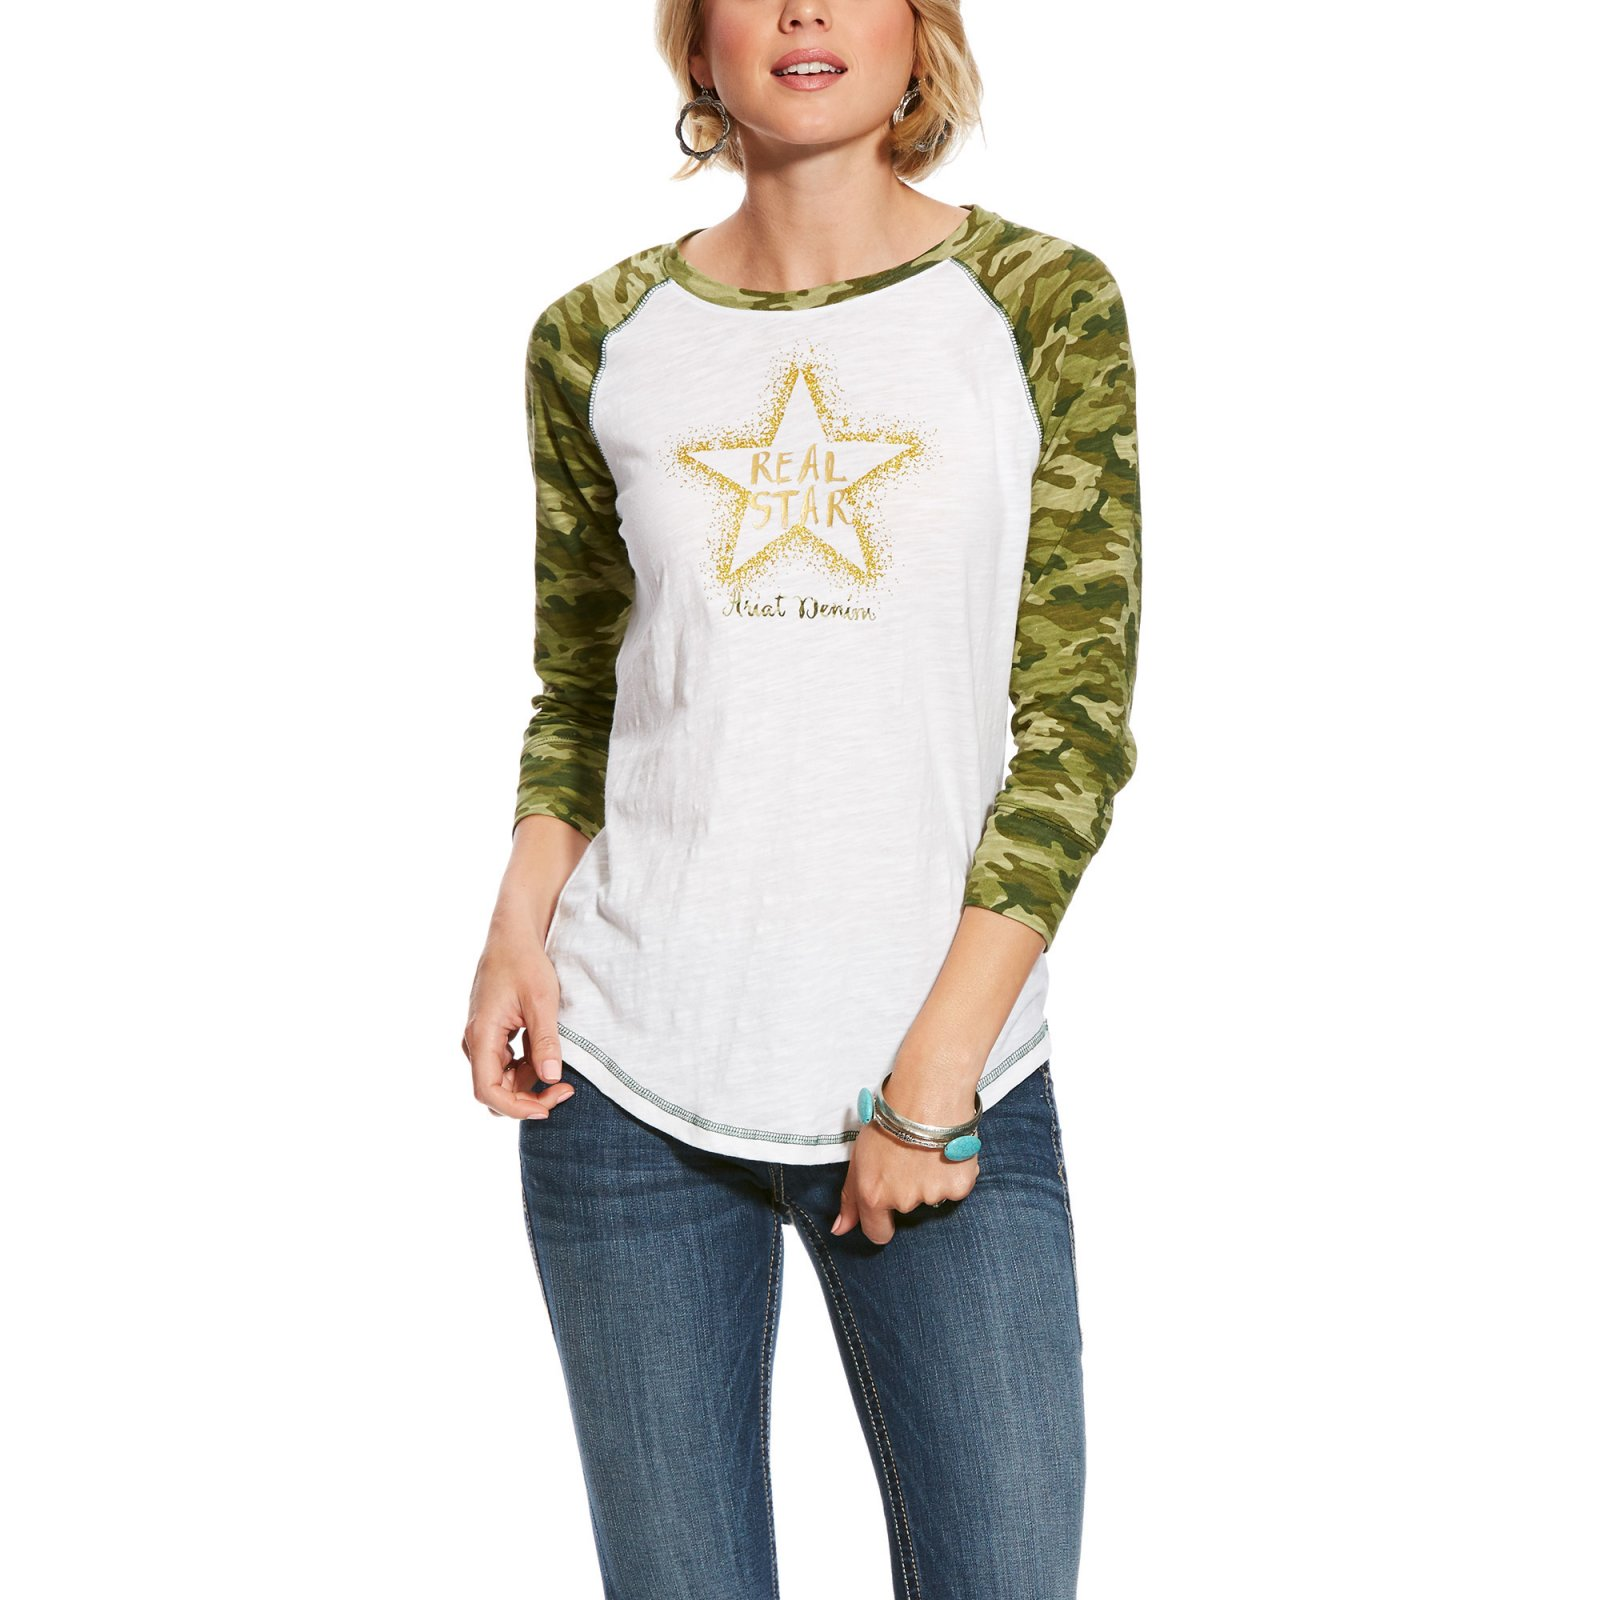 Ladies Real Camo Tee Shirt from Ariat